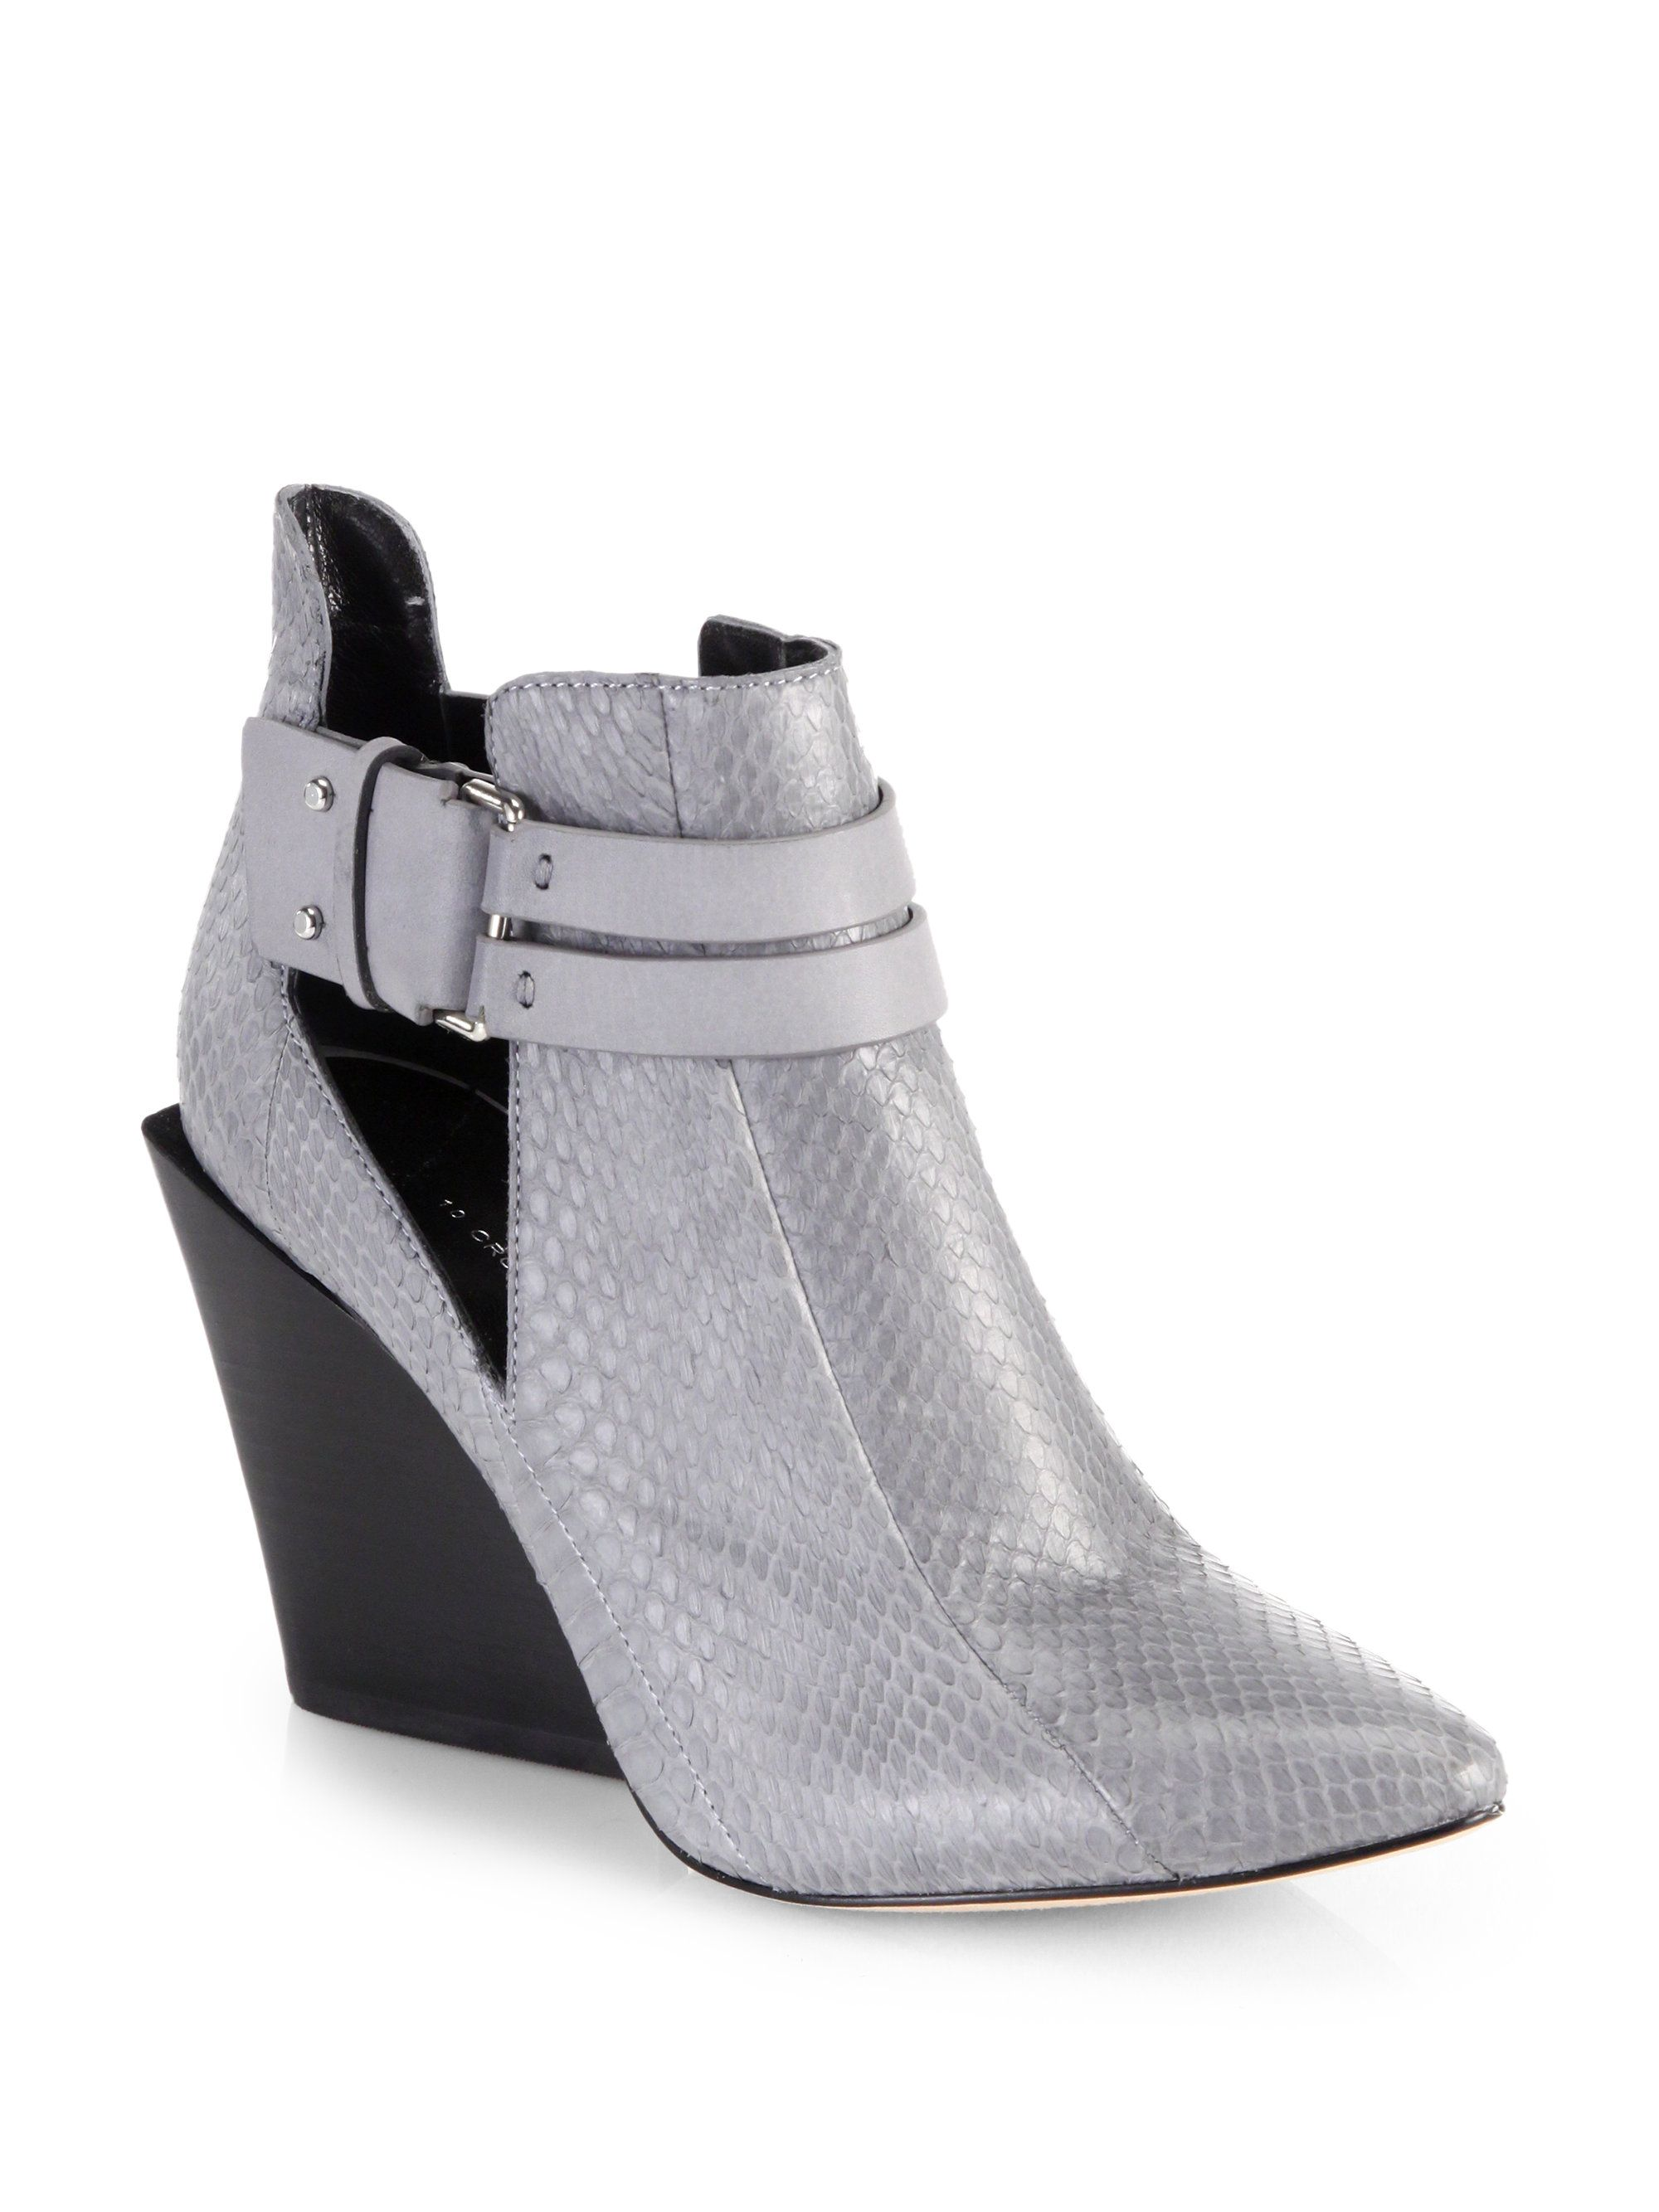 Derek Lam 10 Crosby Embossed Patent Leather Wedges cheap prices Cheapest cheap online 2014 unisex cheap online low price fee shipping sale online R8iIyuX